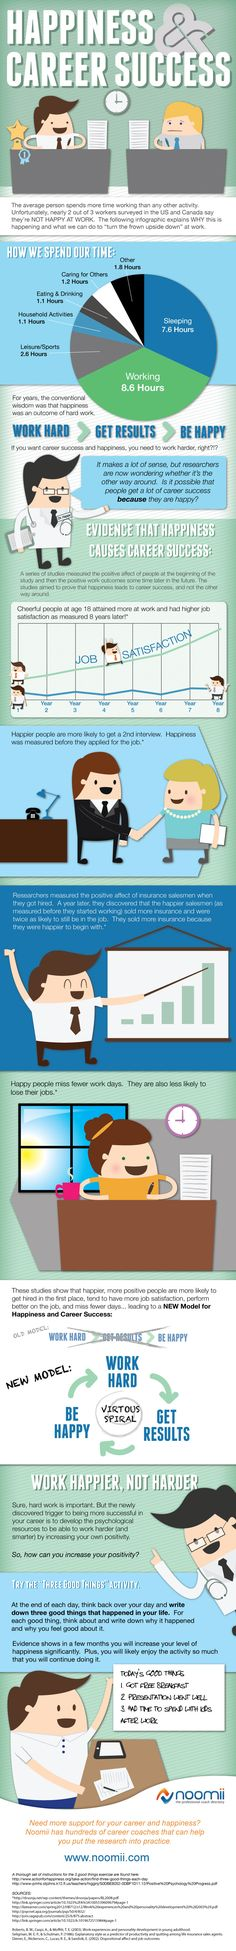 Happiness & Career Success (Infographic) | uCollect Infographics